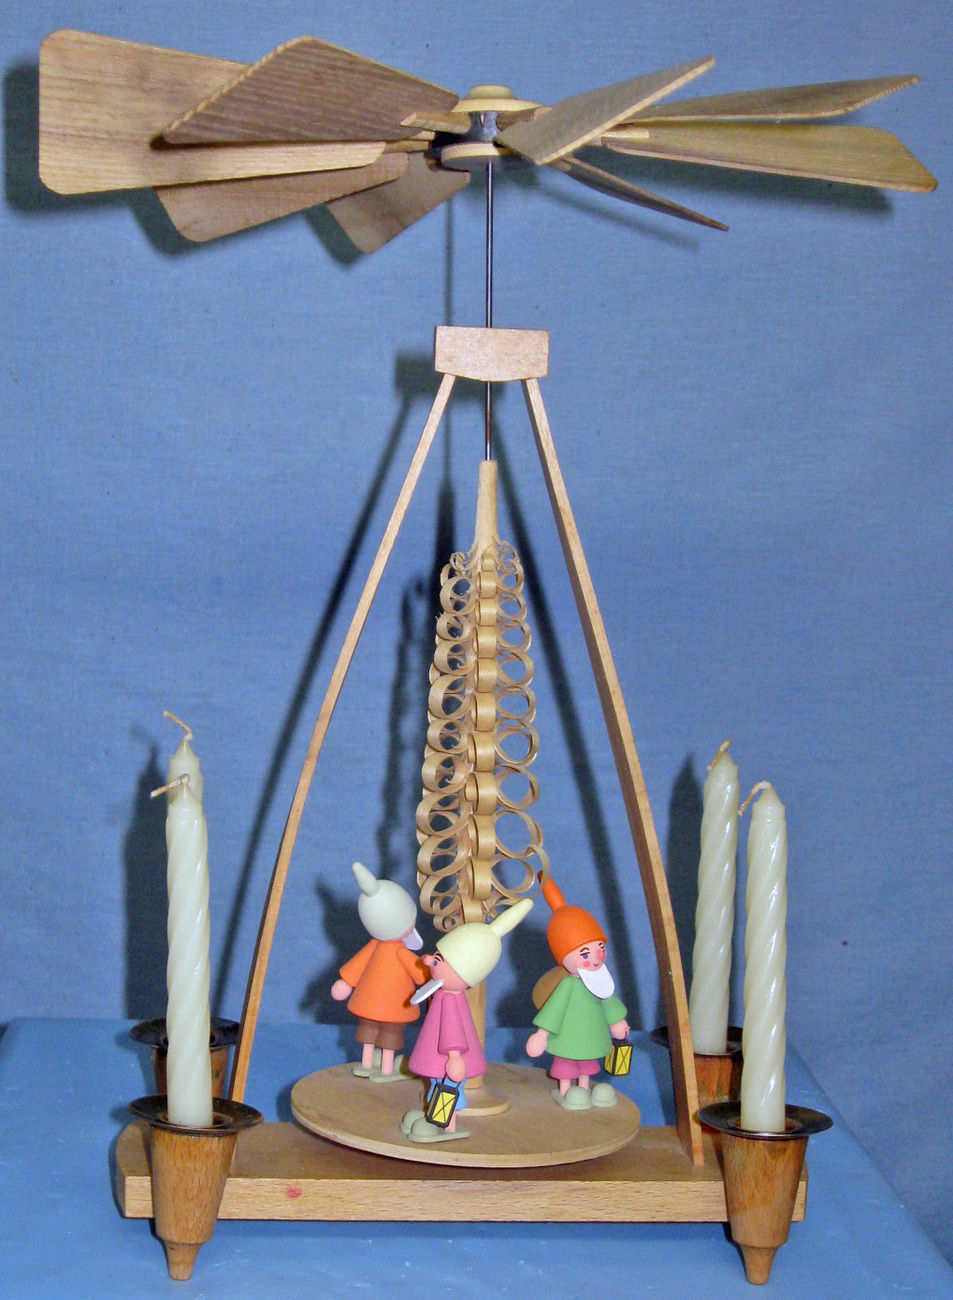 Wood Carousel - Made in E. Germany (c.1970)